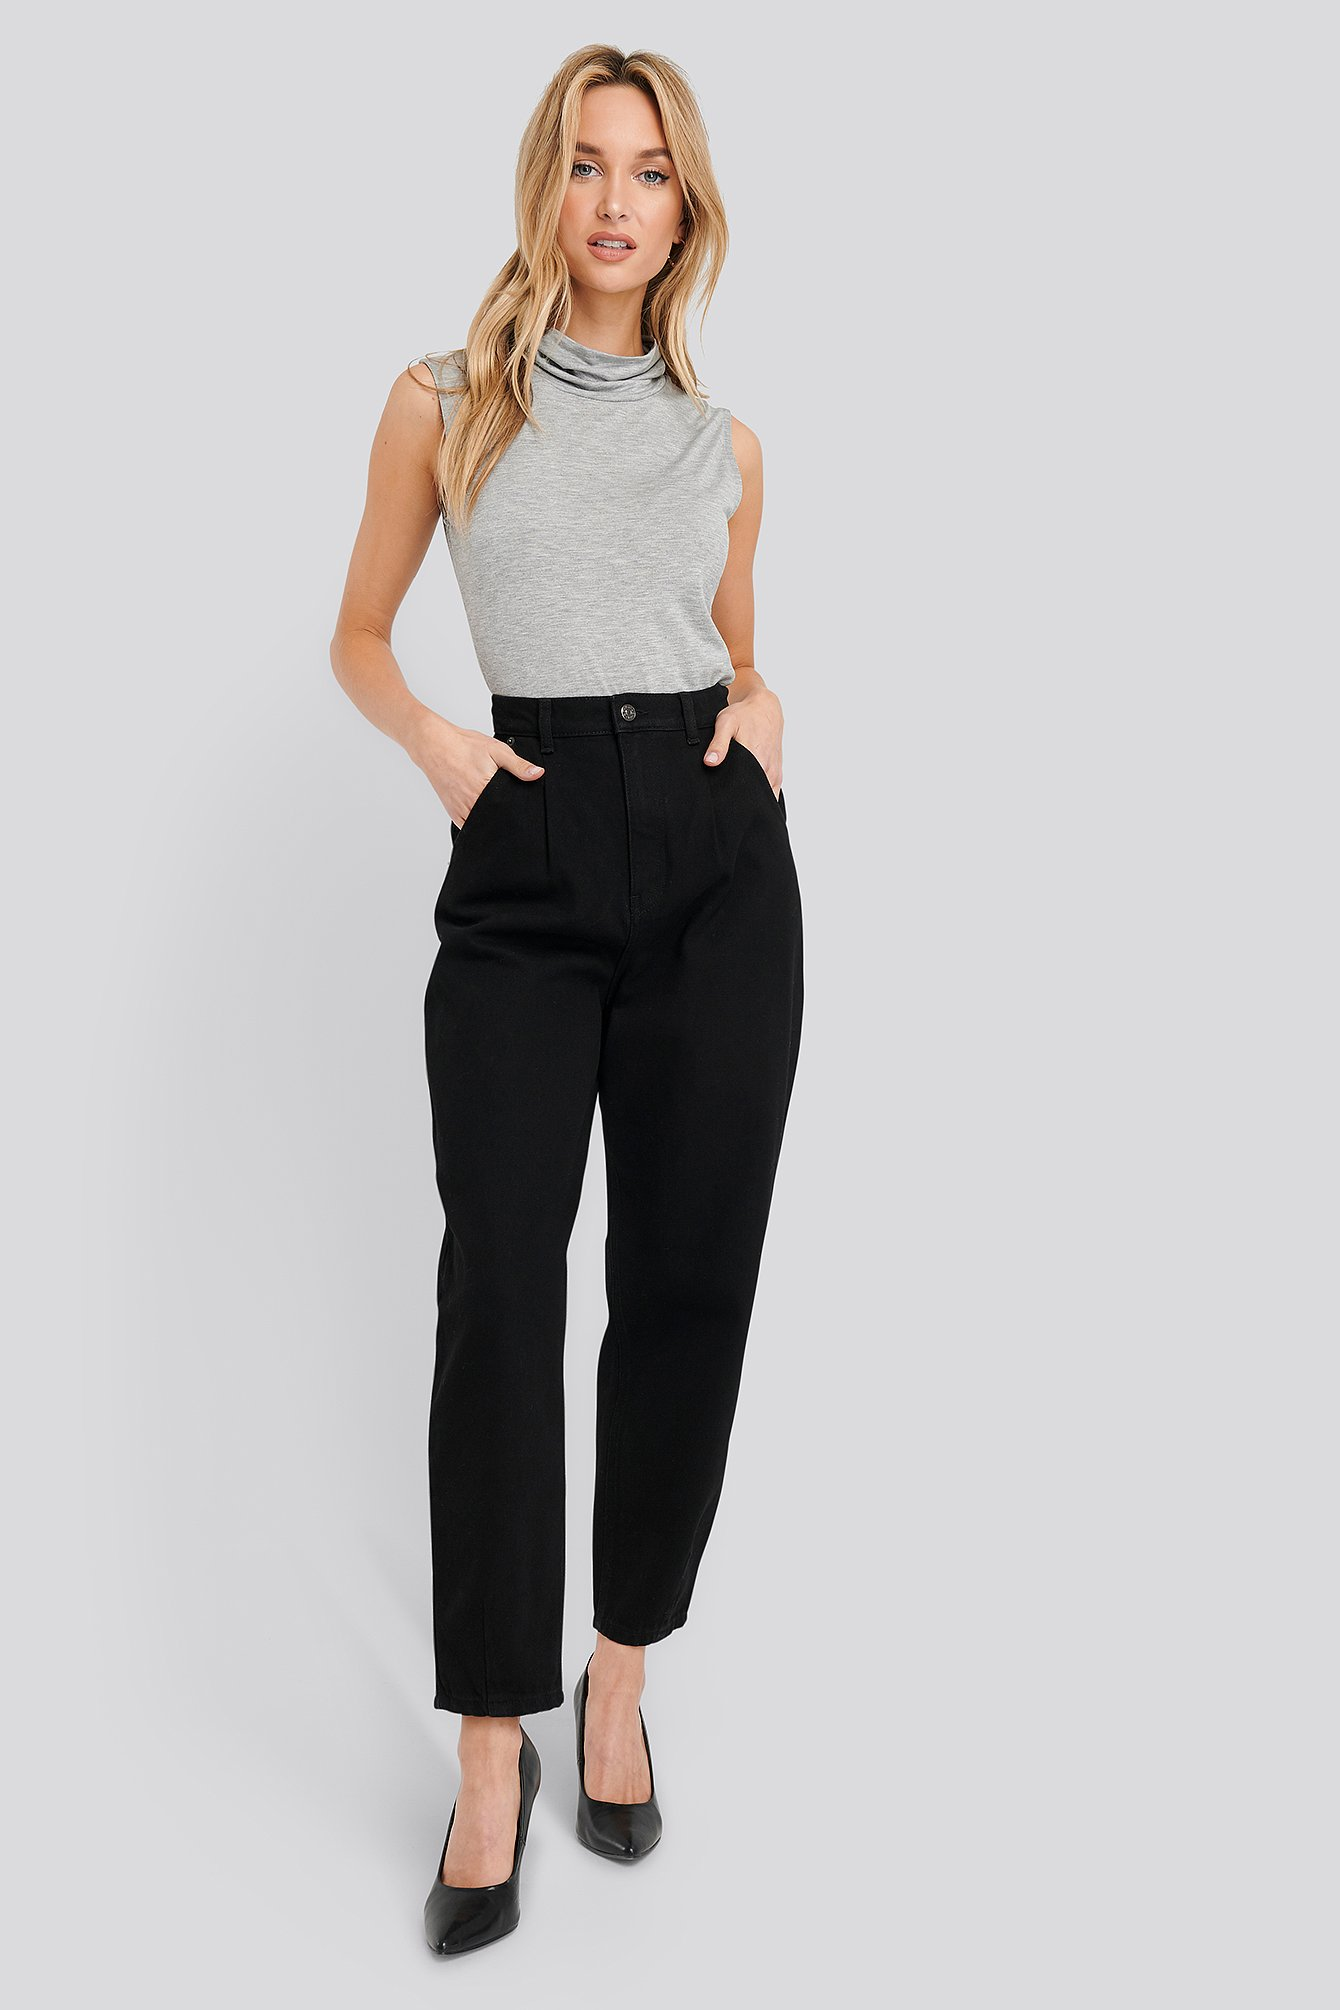 Black Cropped Balloon Leg Jeans